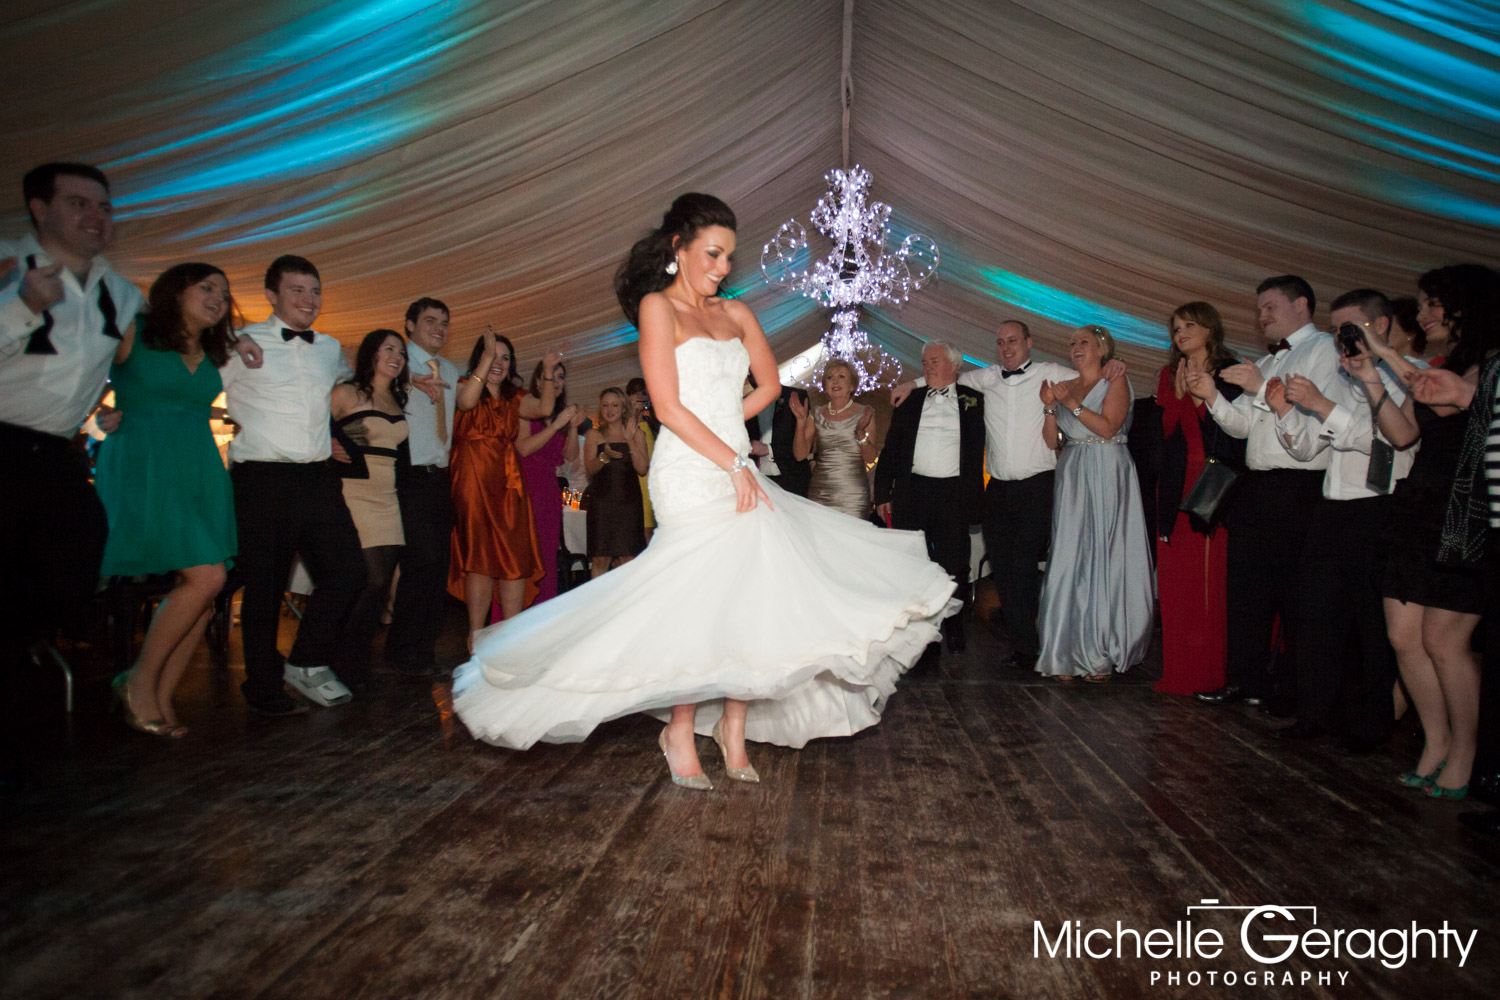 2131-Michelle Geraghty Photography_Mary & Connal-IMG_4853.jpg